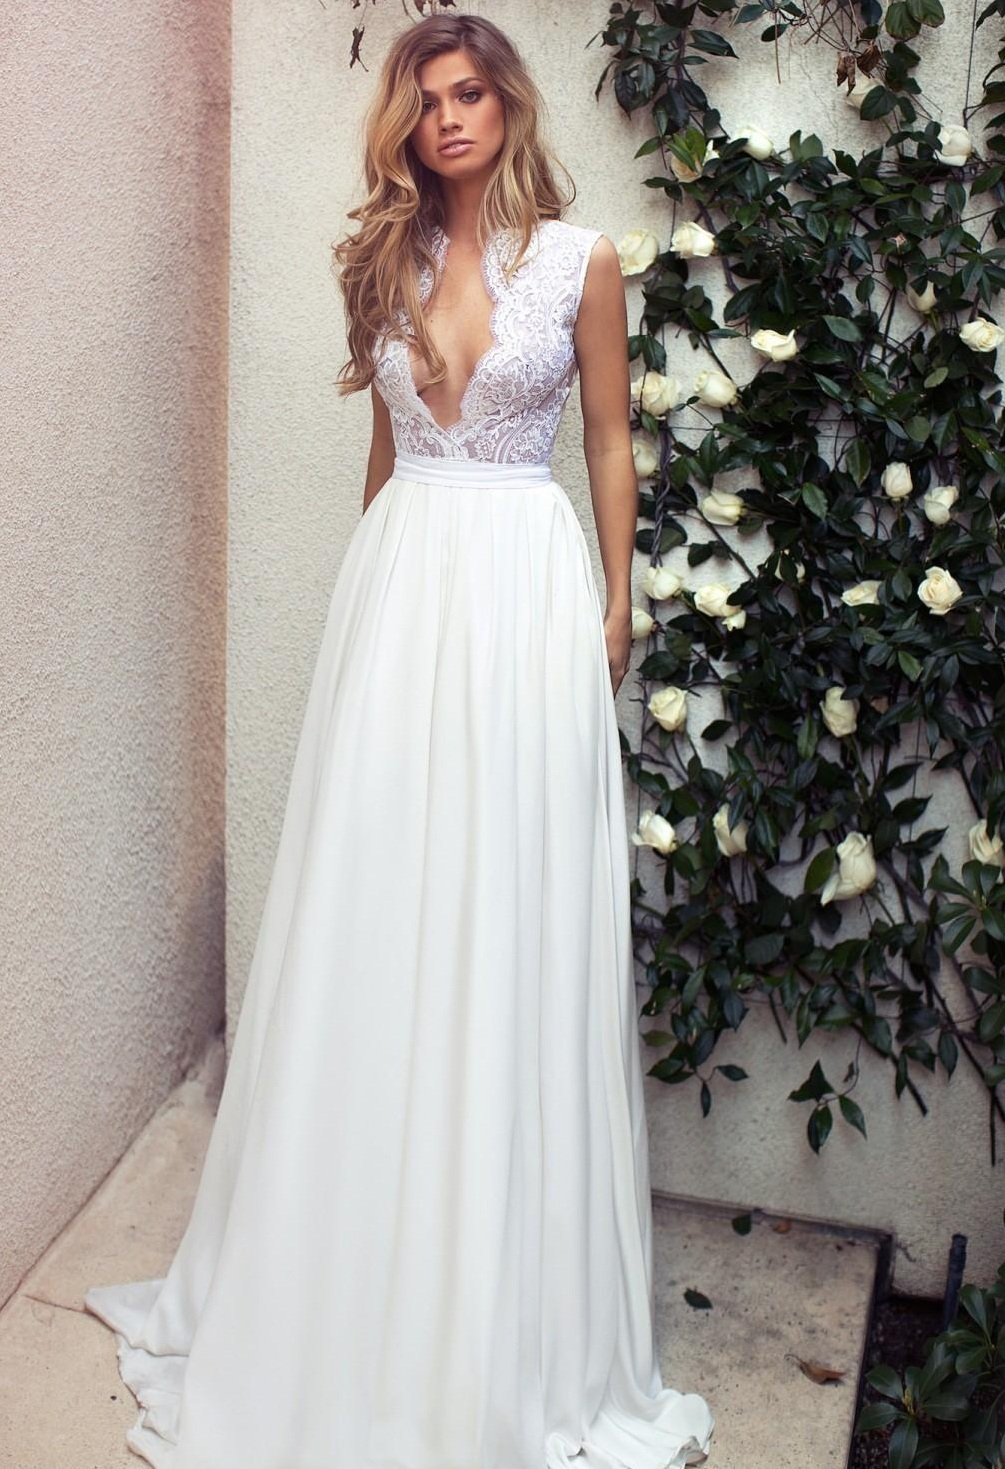 Plunging neckline beach wedding dress